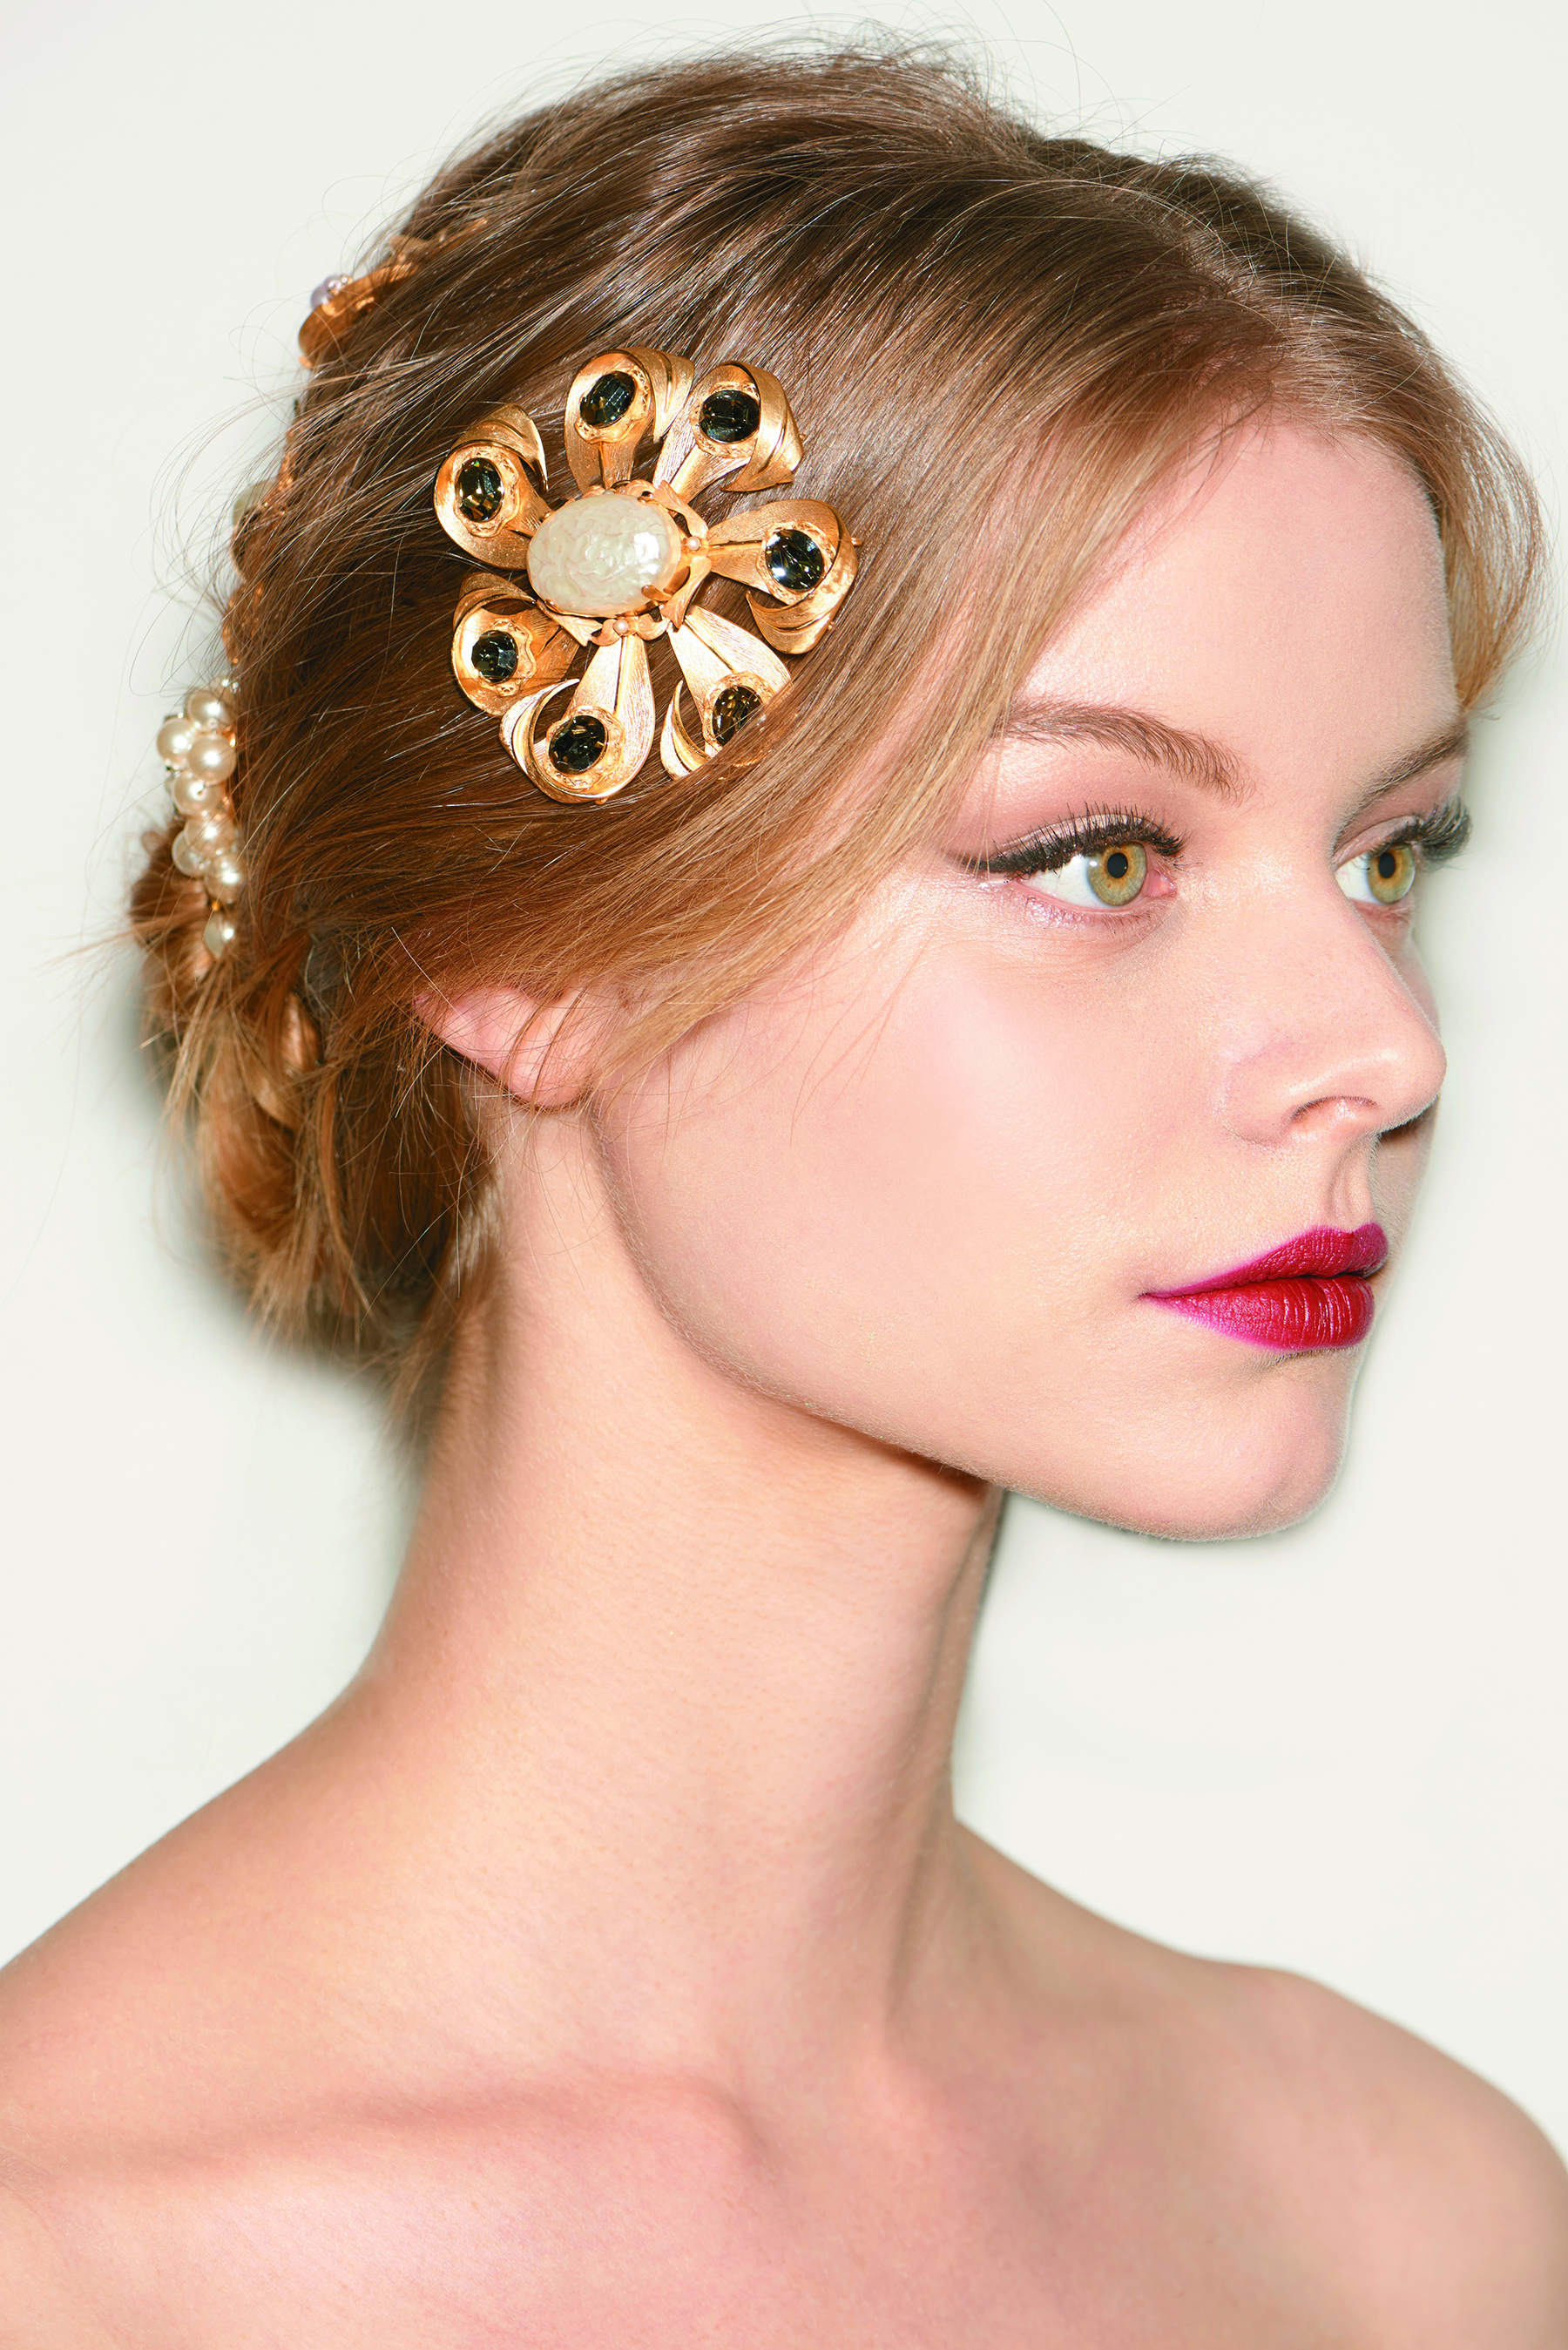 Ornate, jeweled accessories embellished a soft hairstyle at Dolce & Gabbana.